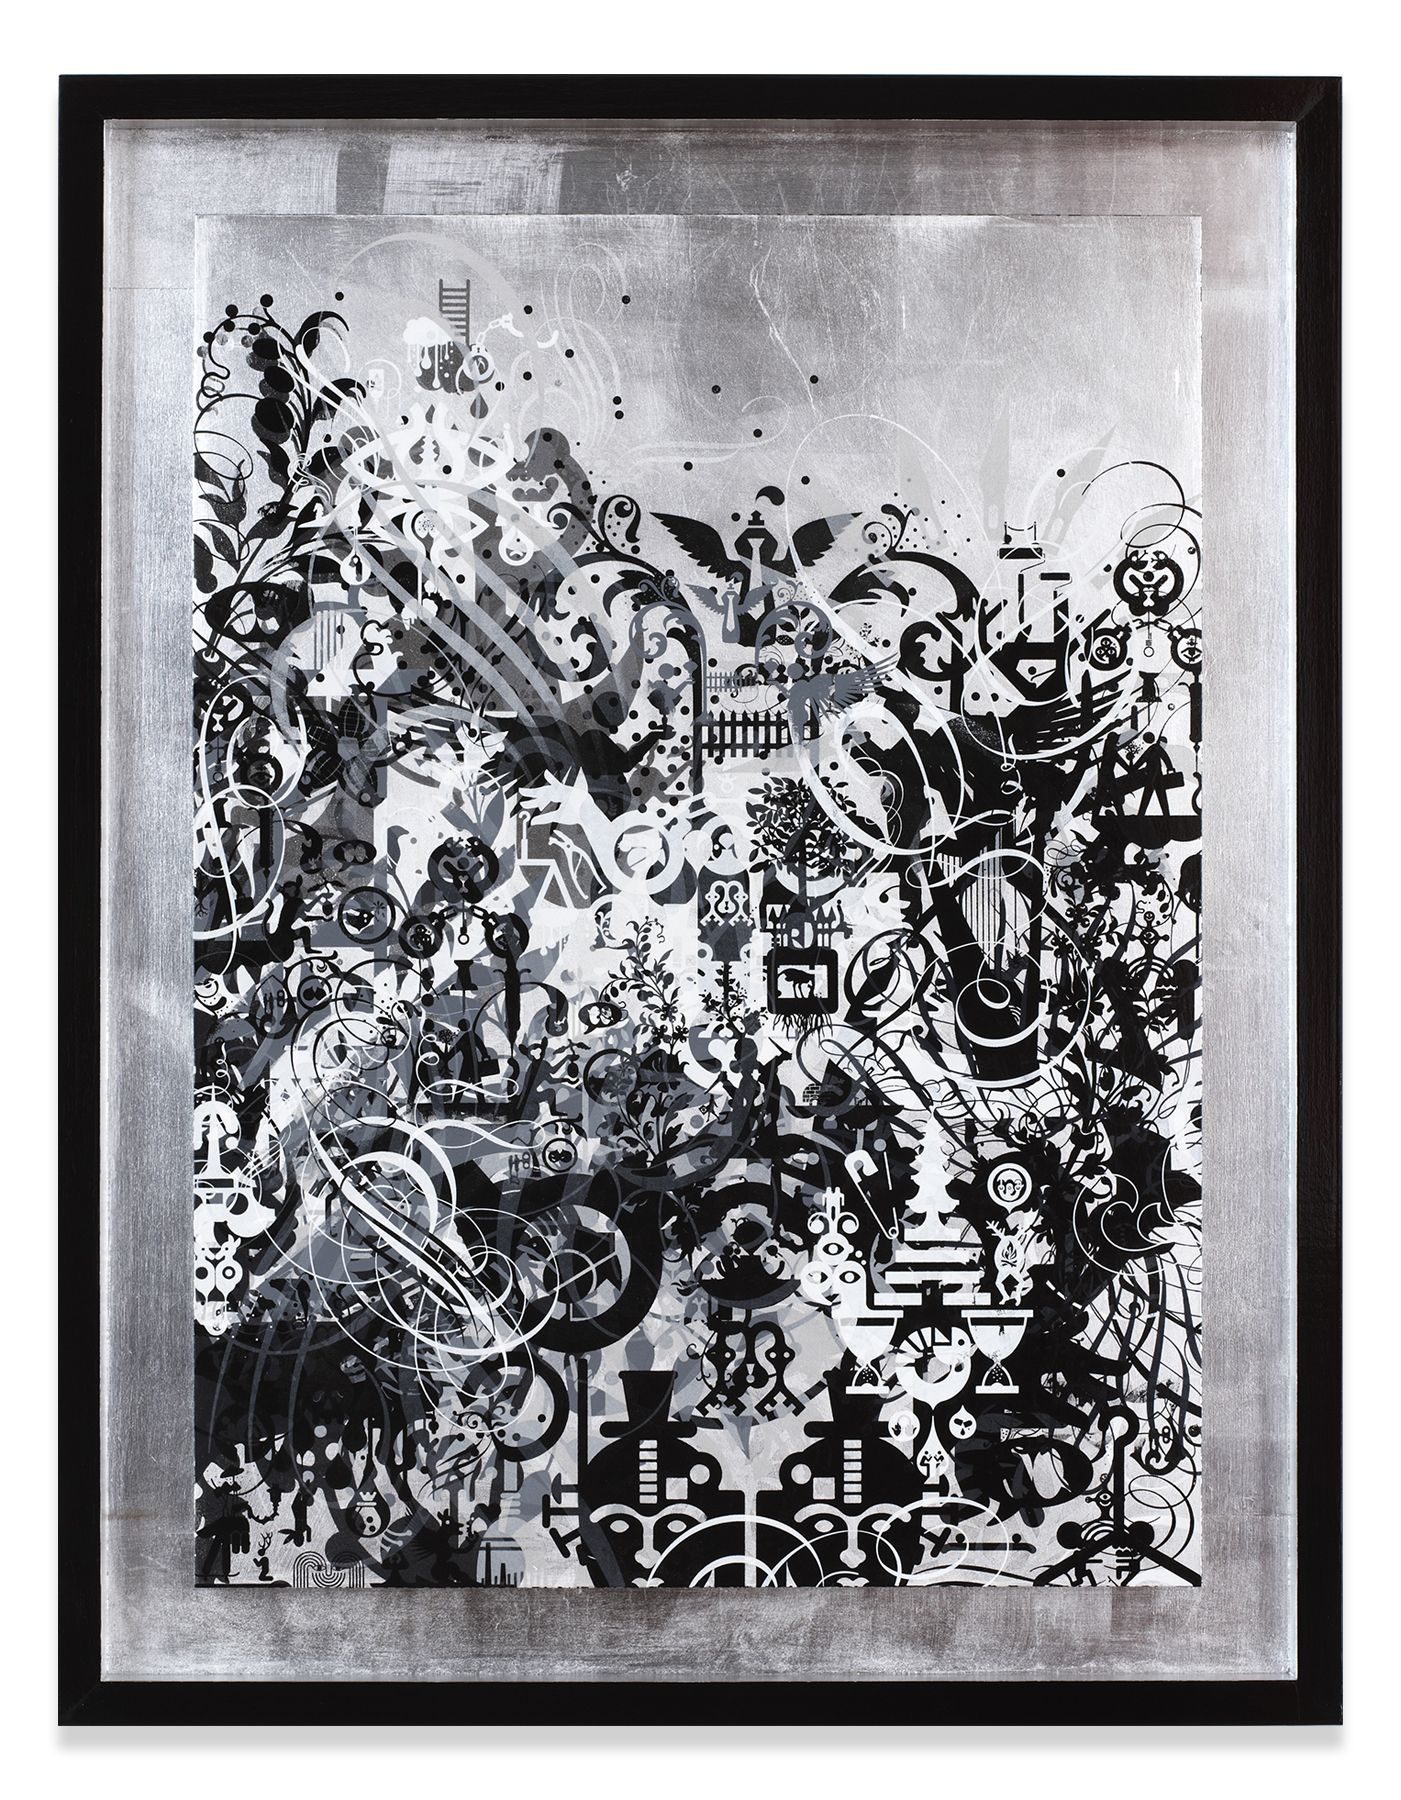 Fear Attacks Courage Waits, 2014,Oil, acrylic and metal leaf on wood panel in artist's frame,36 x 28 inches,91.4 x 71.1 cm,MMG#31353